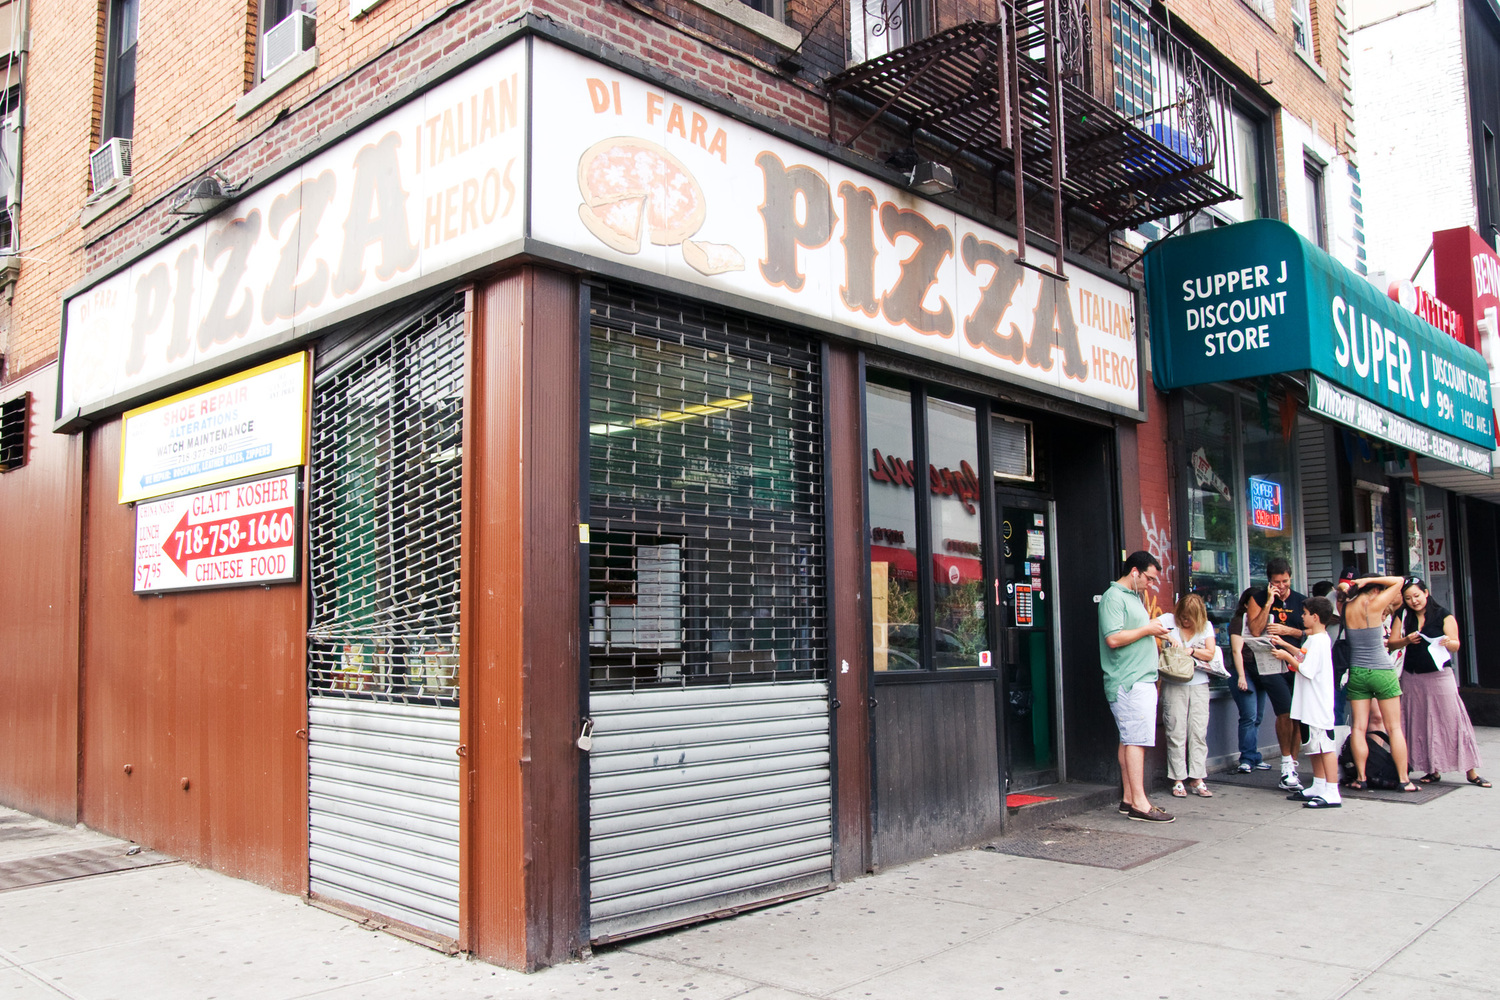 Di Fara Pizza, Midwood, Brooklyn